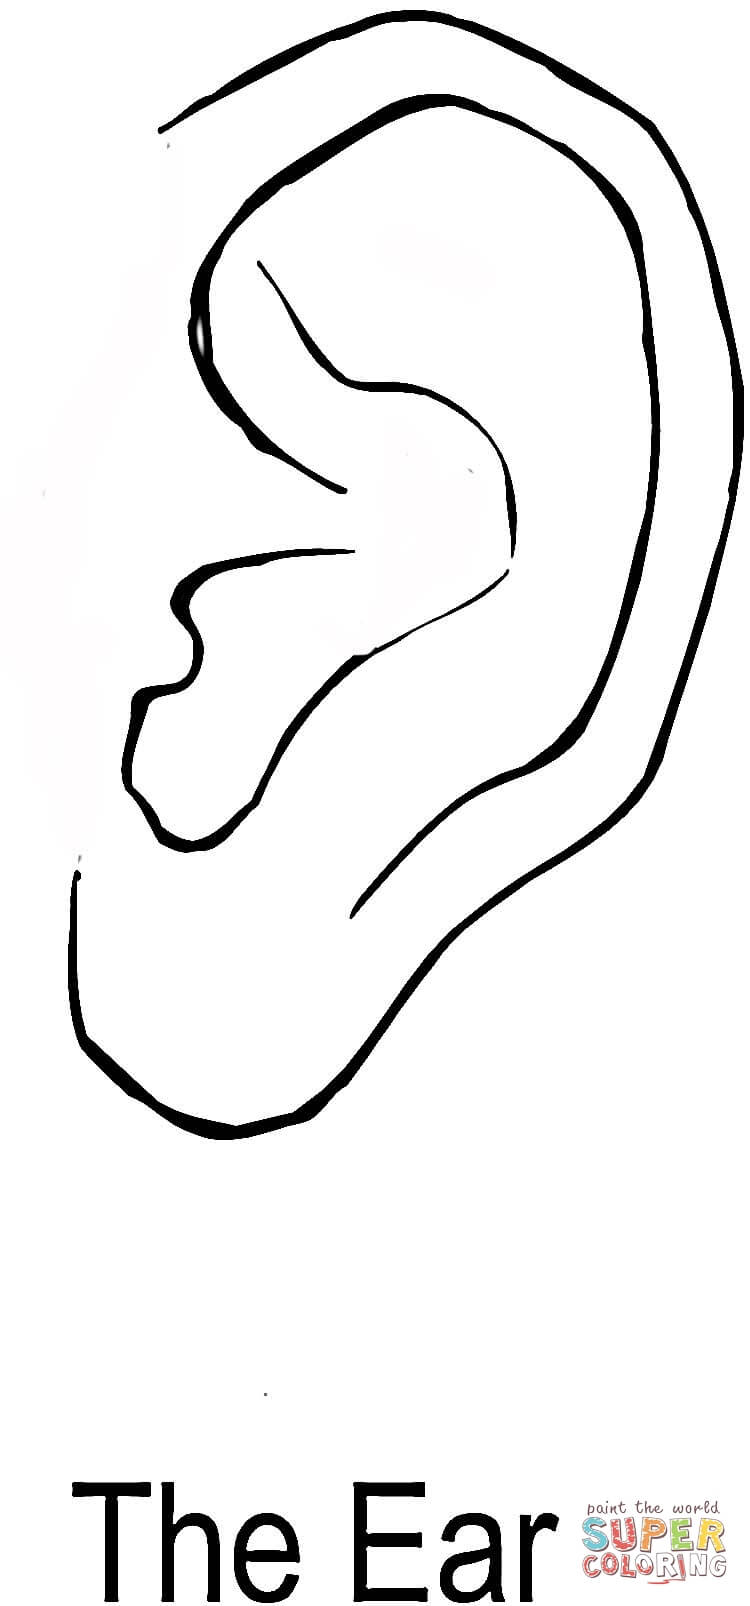 The Ear Coloring Page Free Printable Coloring Pages